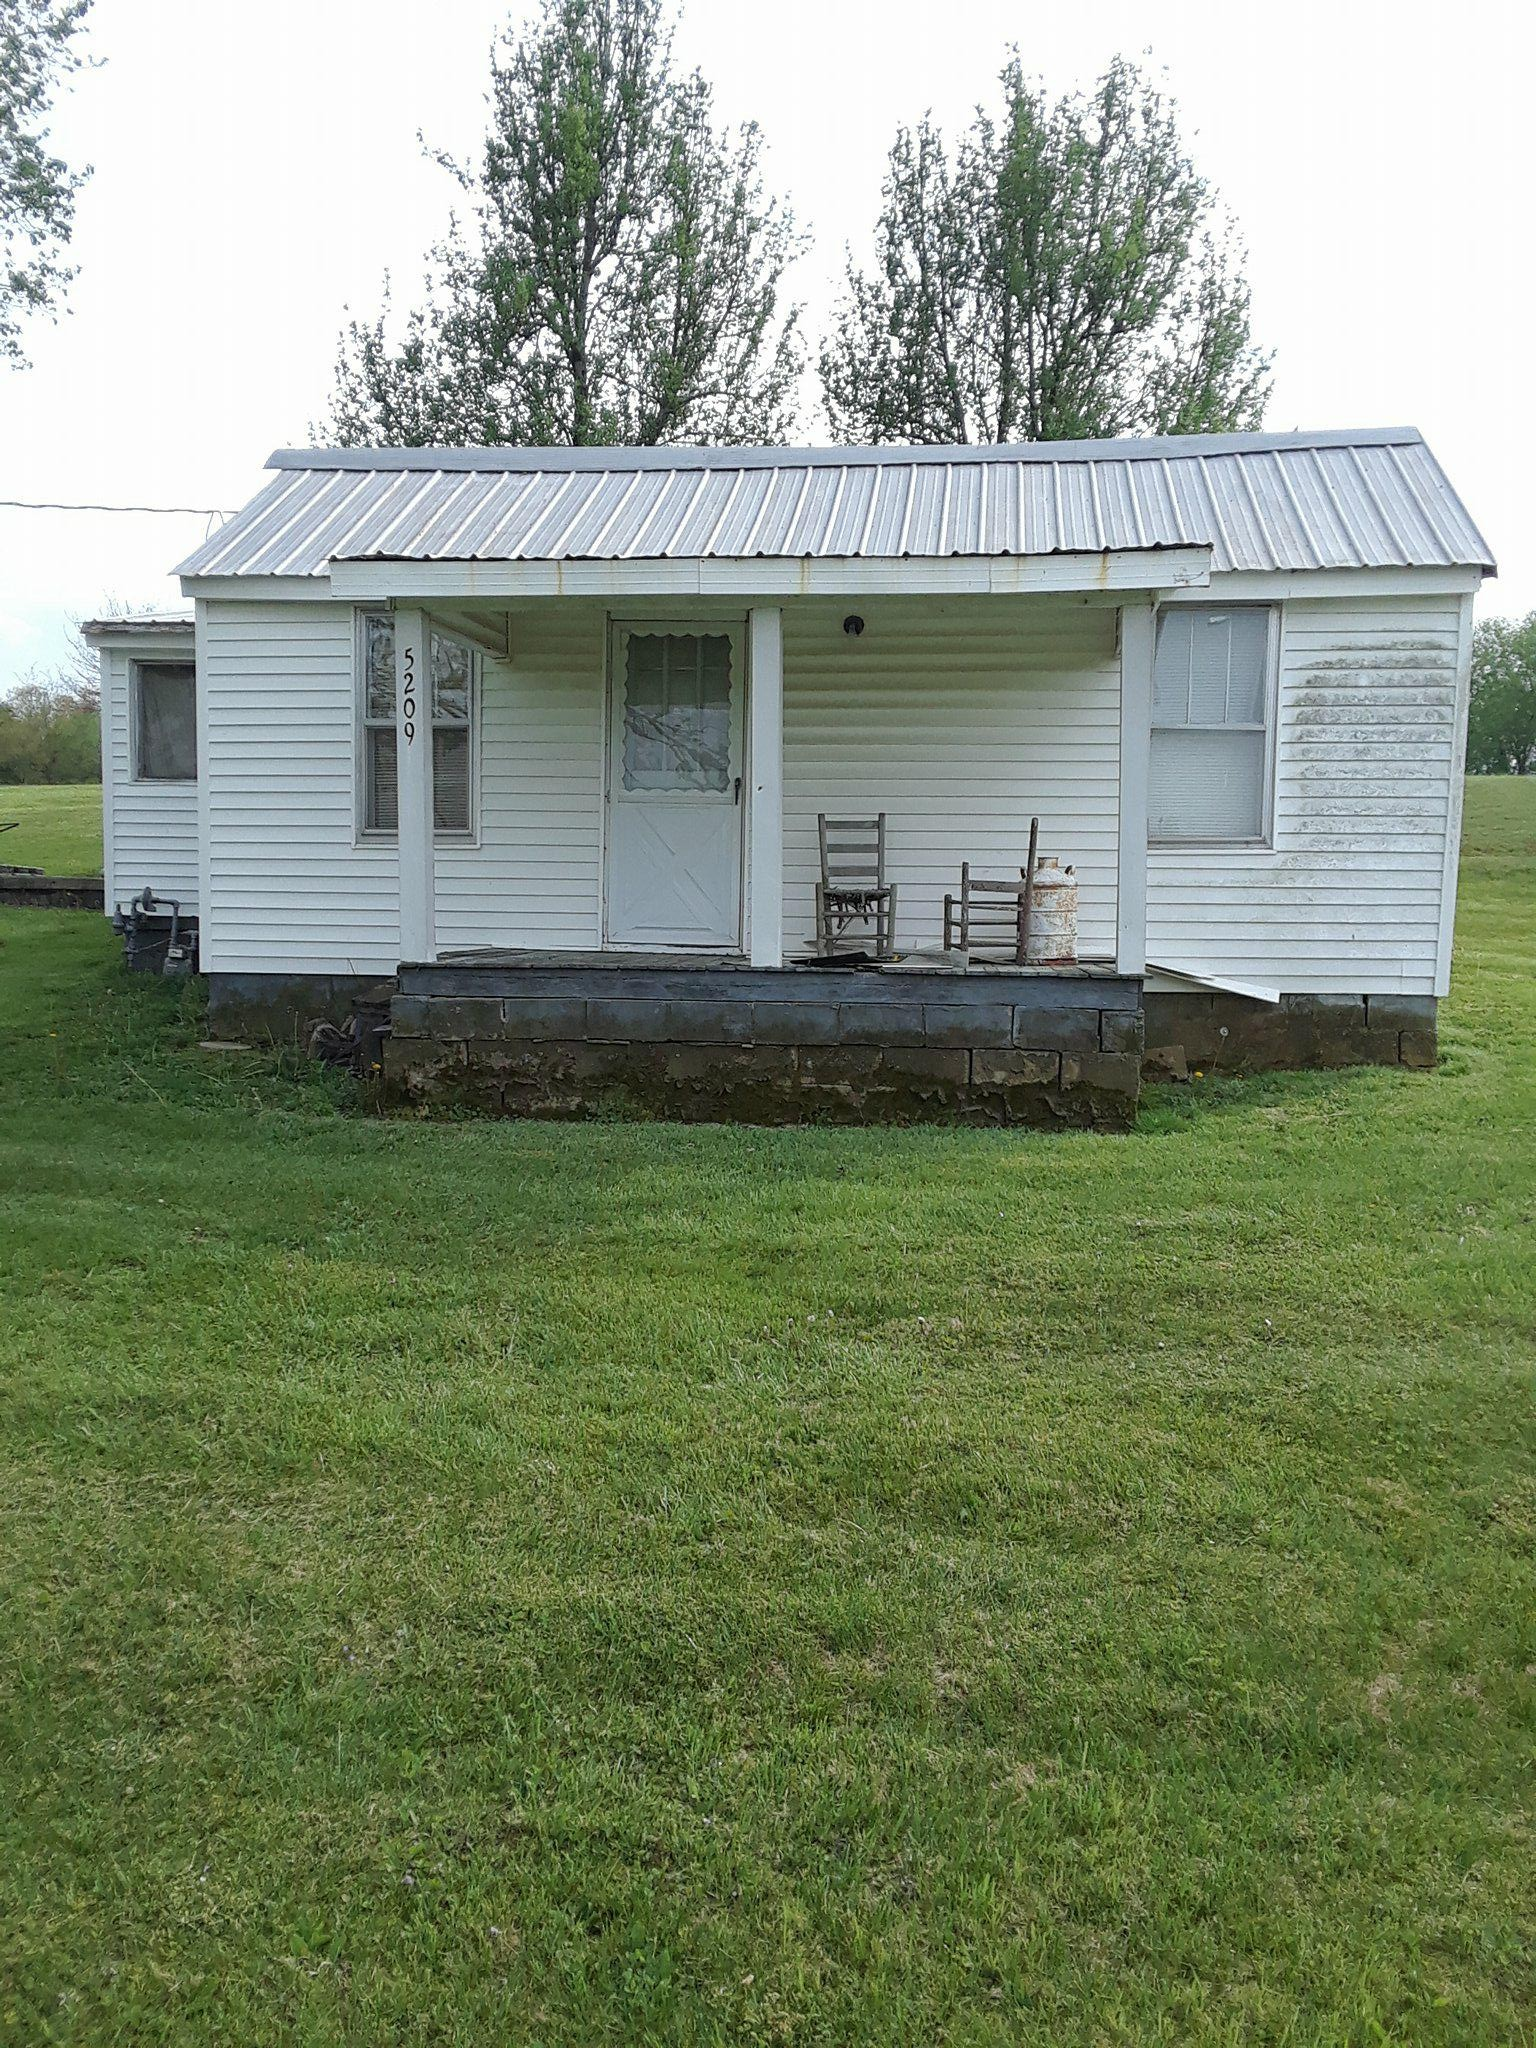 Real Estate auction Hardin County KY